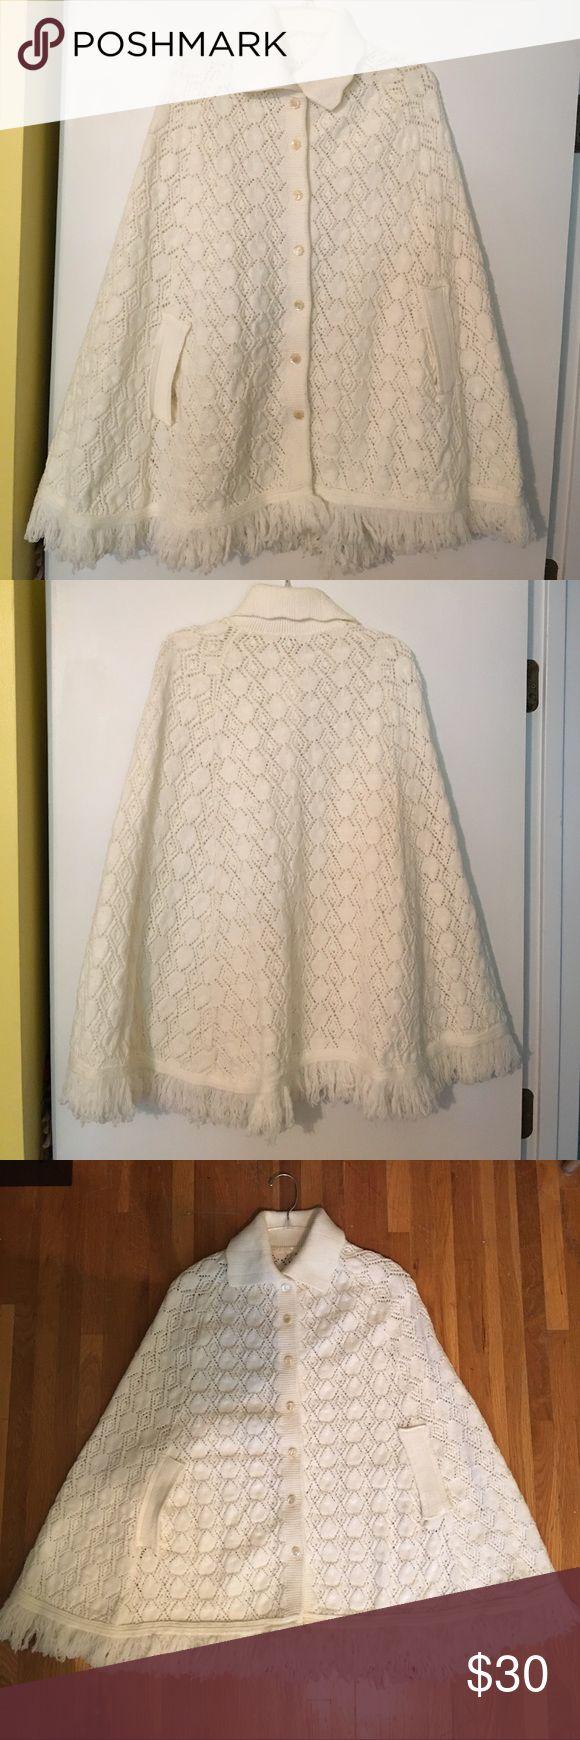 Vintage Fringe Sweater Cape With Pockets Vintage fringe sweater cape. One size. Color is Ivory. Gorgeous knit with fringe detail, rib knit collar, pearlized buttons and side arm holes. Button front closure. No tags. Hand wash. In excellent condition. Sweaters Shrugs & Ponchos